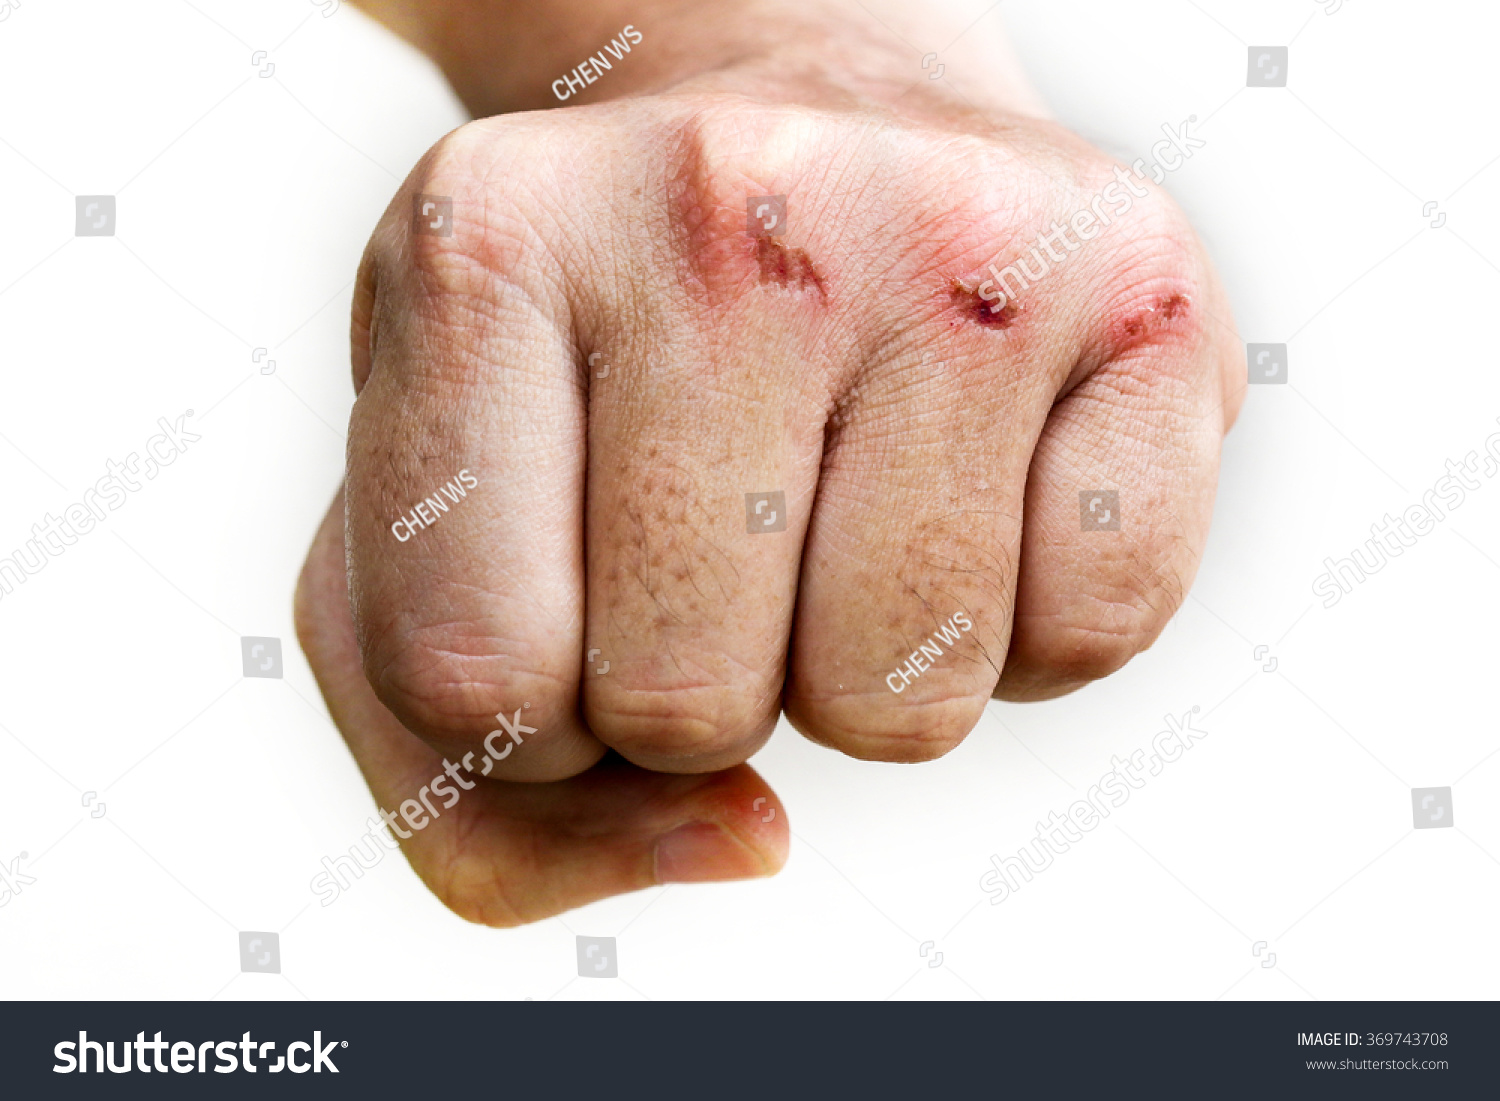 Skin Abrasion Injury On Knuckles Left Stock Photo (Edit Now ...